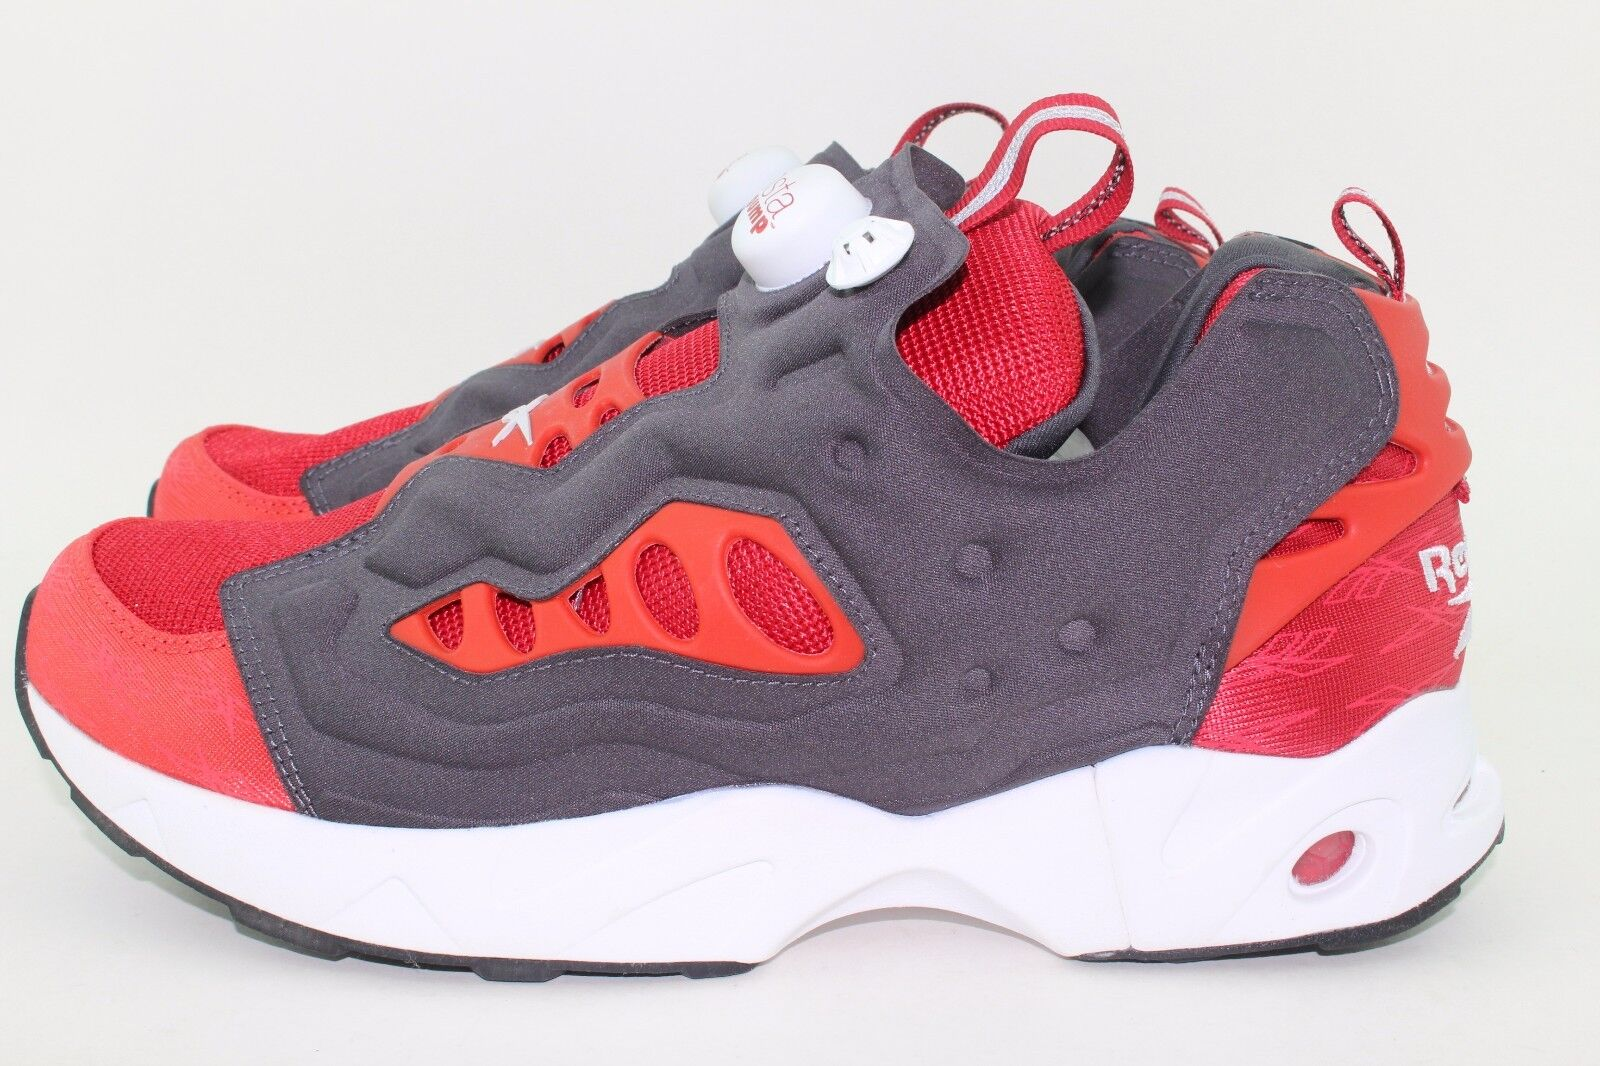 REEBOK INSTAPUMP FURY ROAD MEN SIZE 13.0 FLASH RED SUPER NEW AUTHENTIC SUPER RED RARE 6b718a